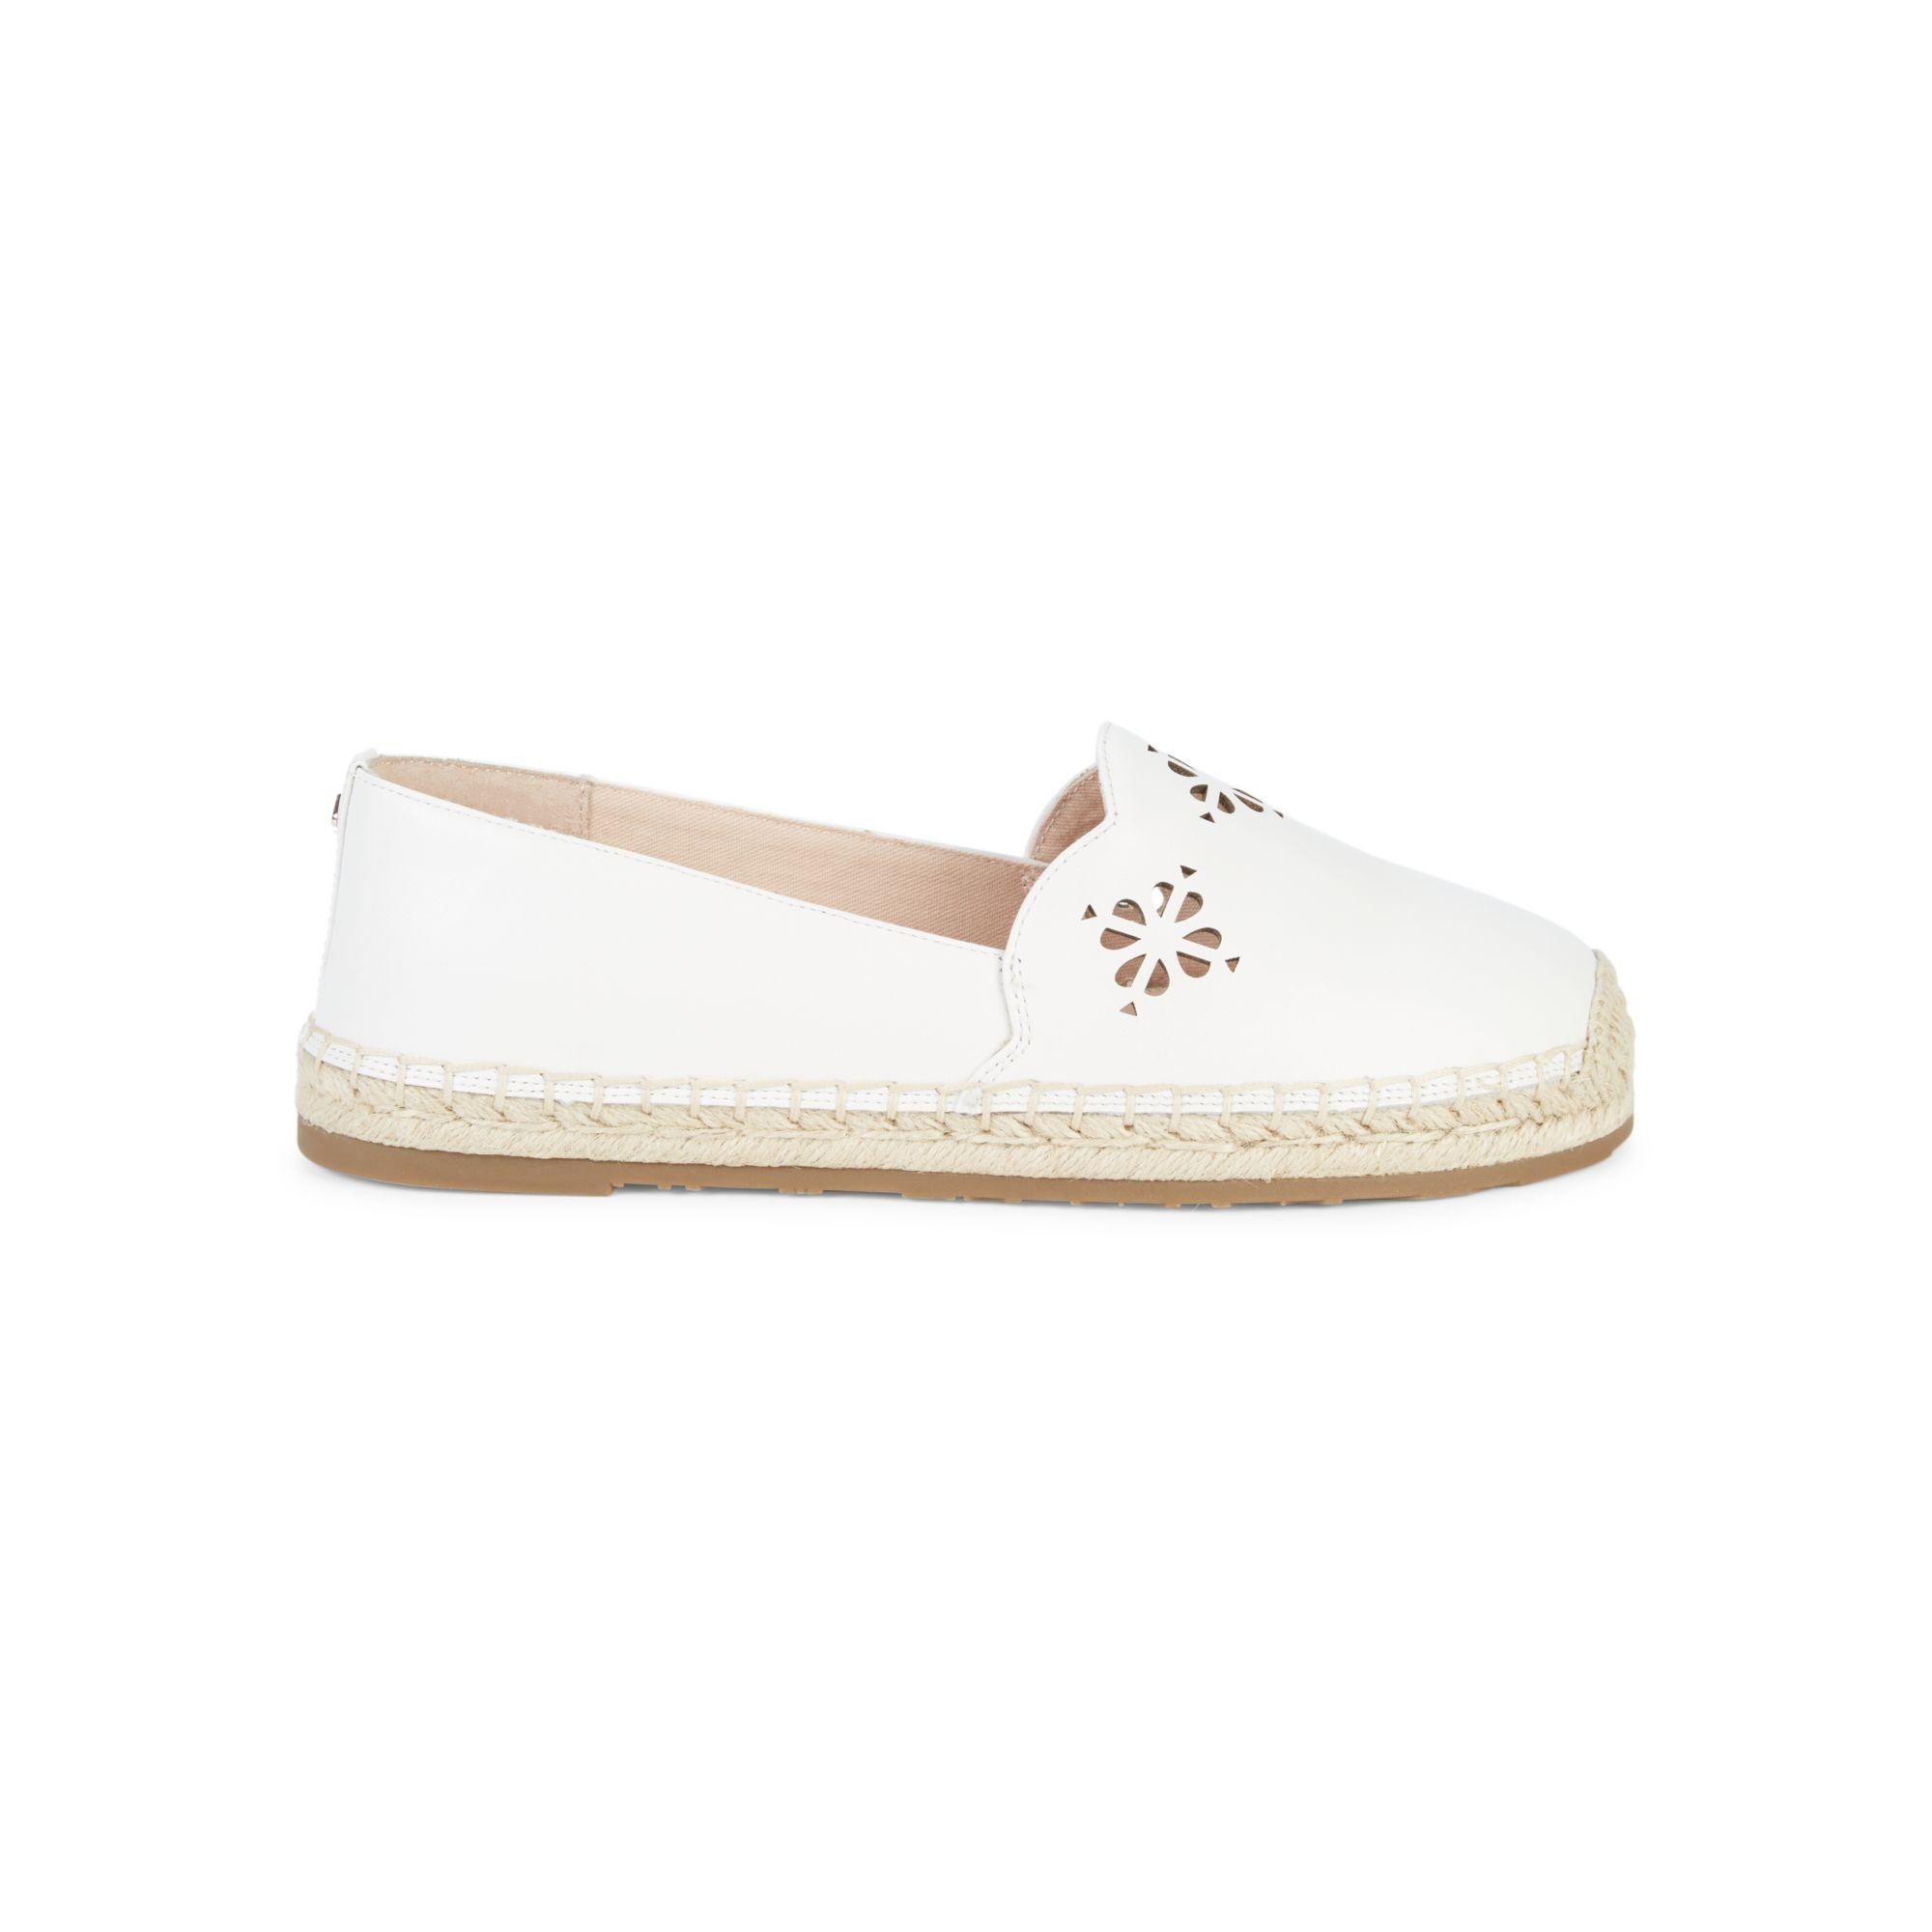 Kate Spade Grecian Leather Slip-on